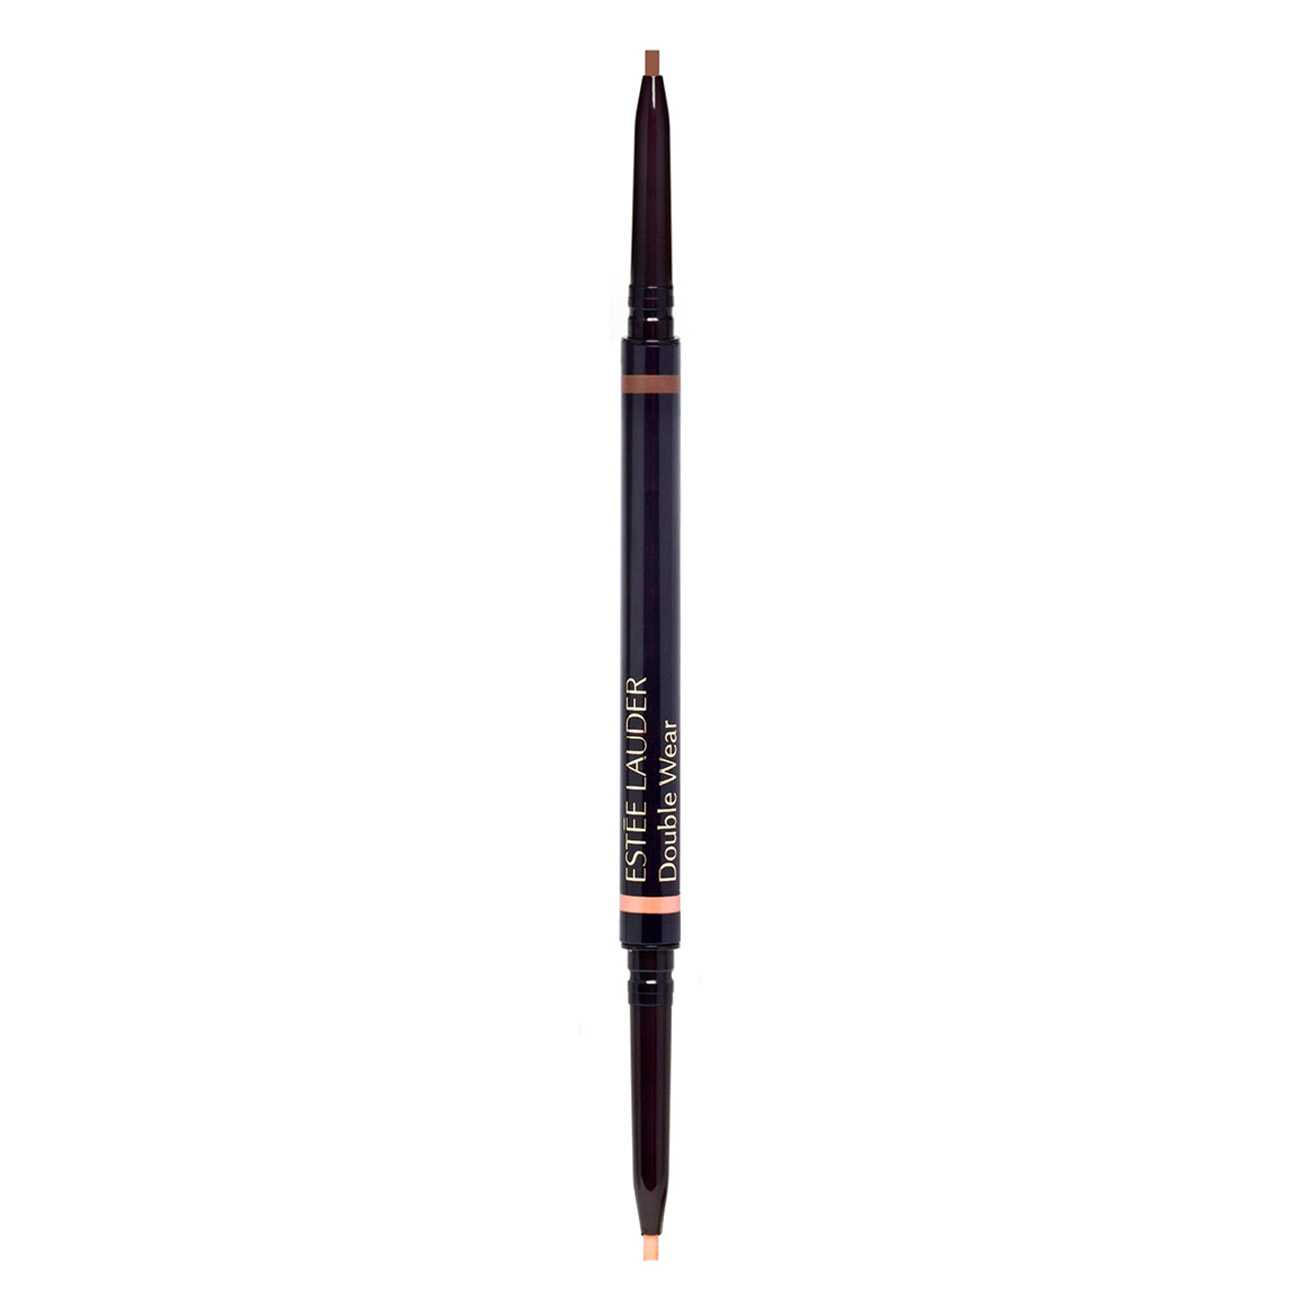 DOUBLE WEAR STAY-IN-PLACE BROW LIFT DUO 0.9 ML Soft Brown 3 imagine produs